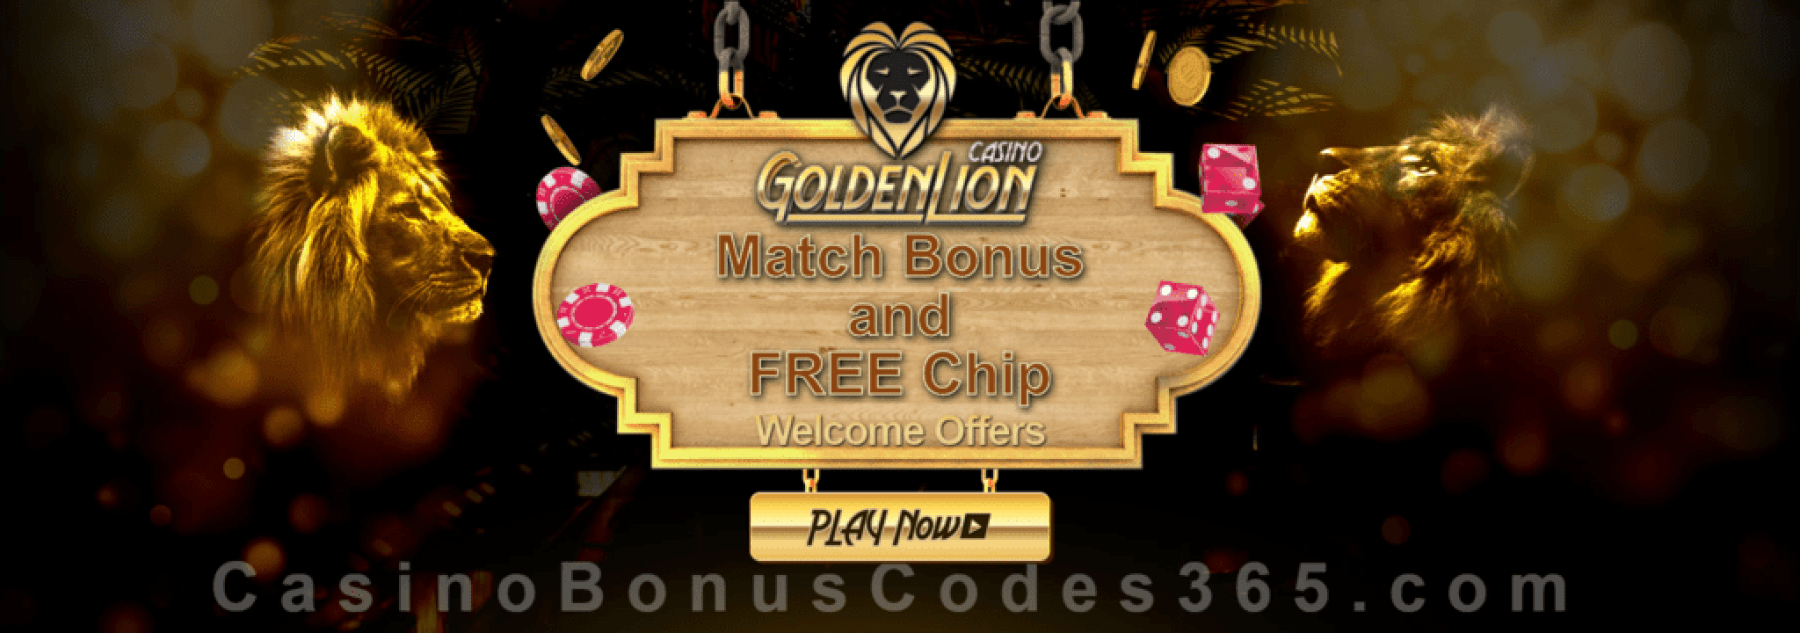 Golden Lion Casino Daily Exclusive Welcome Bonus